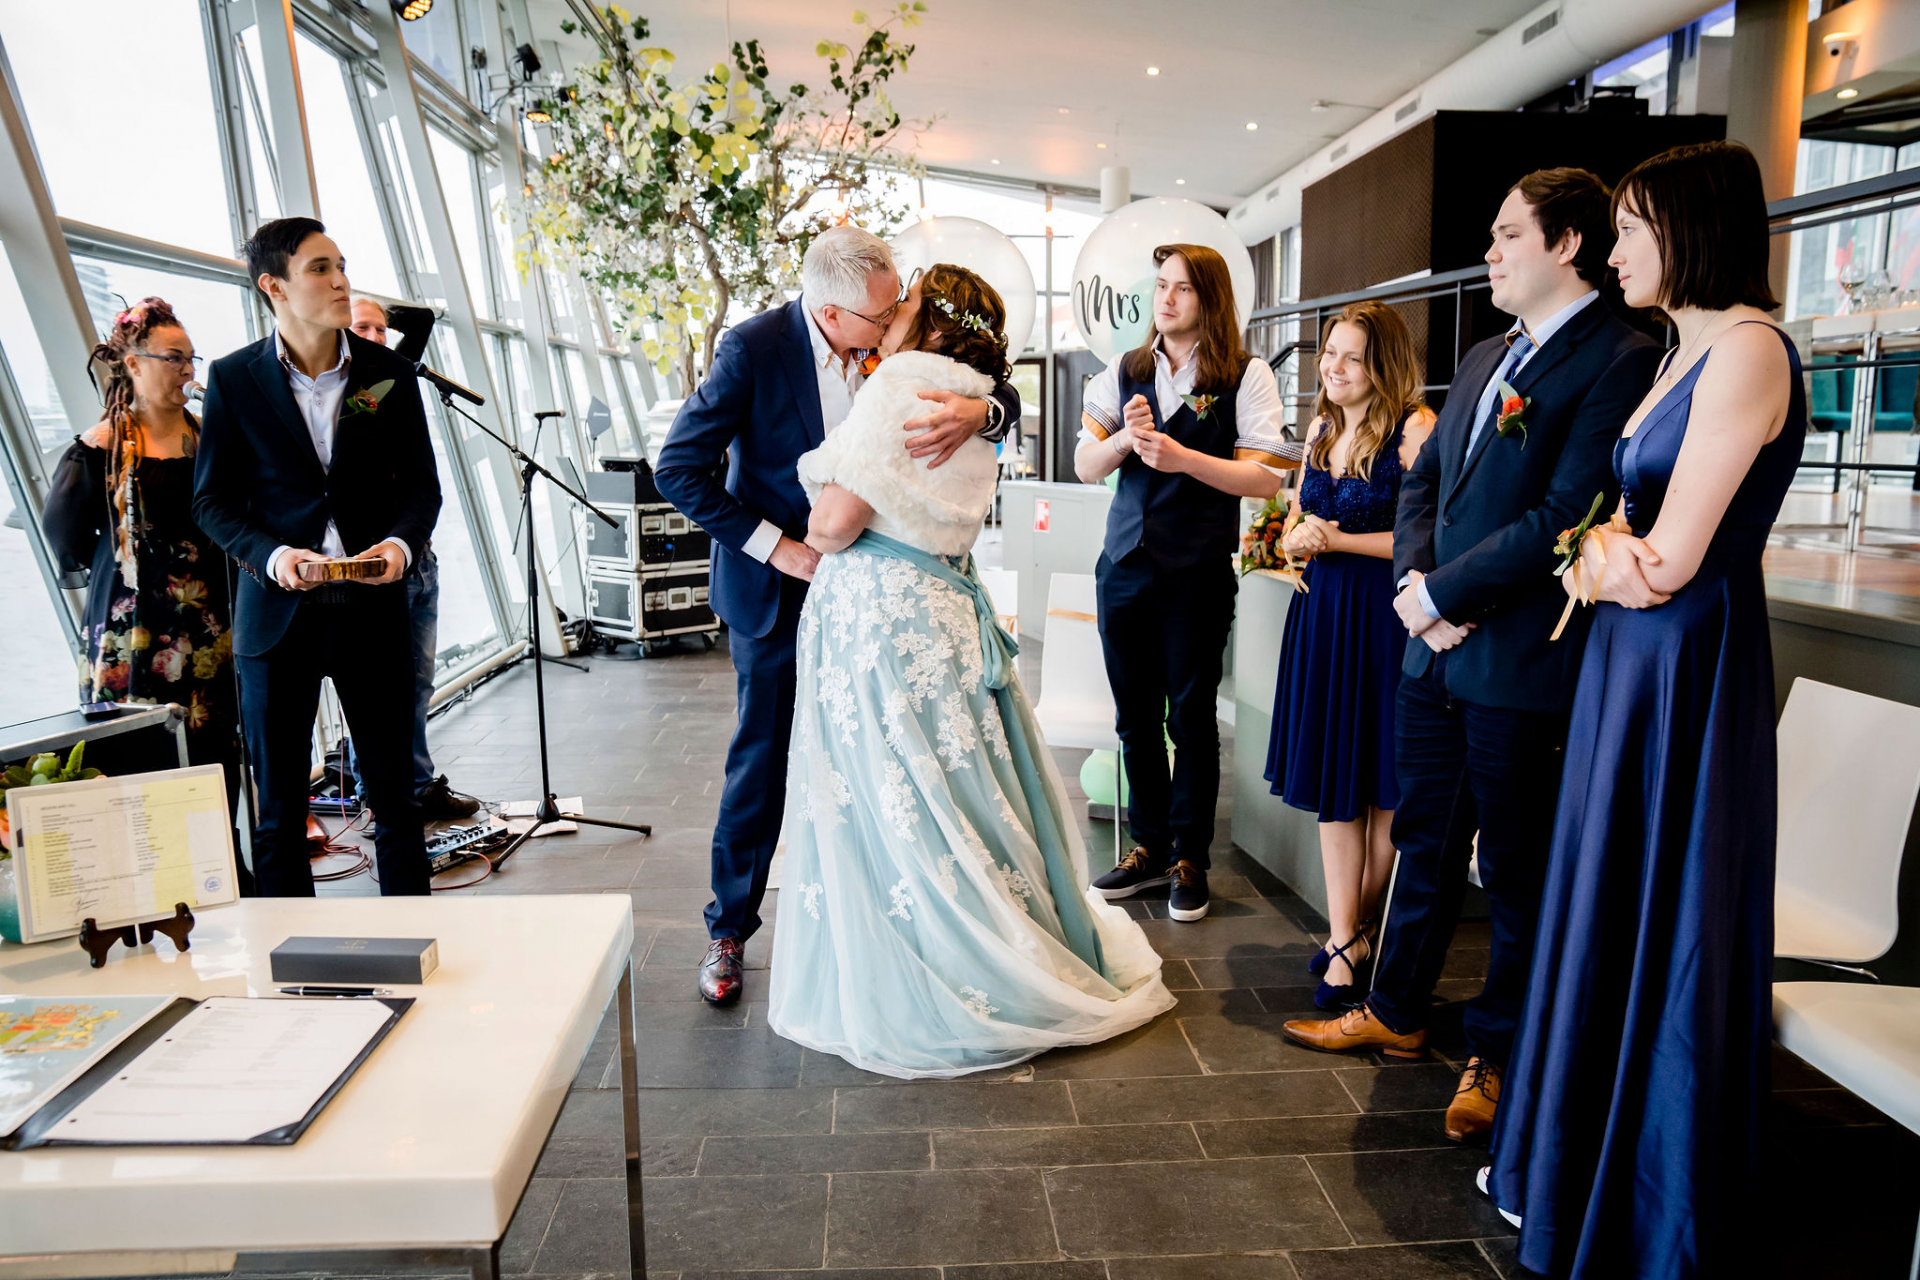 Documentary Wedding Photography, NL | the first kiss signals the start of their new life together